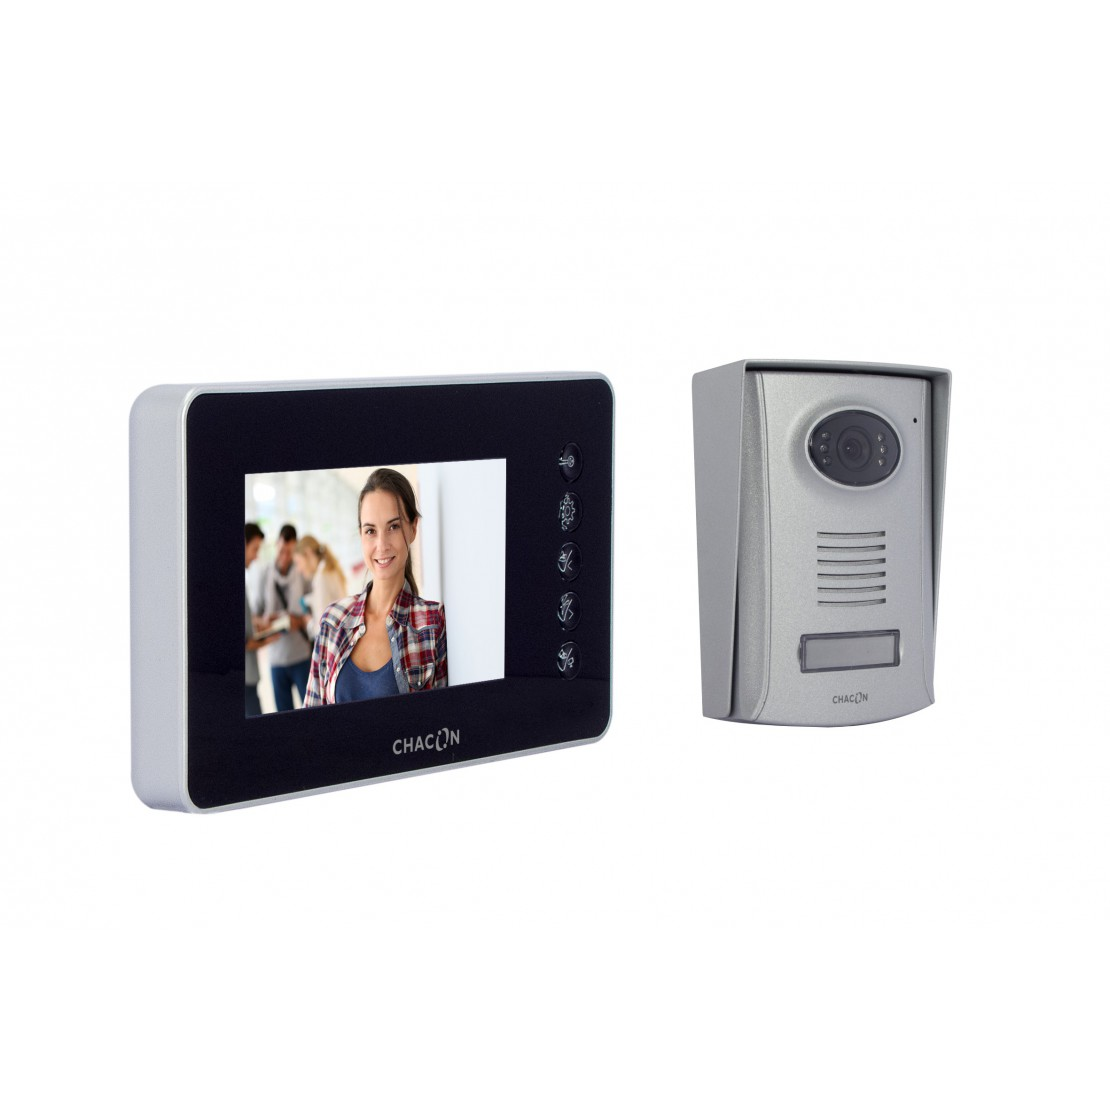 "Hands-free videophone with 4"" screen"